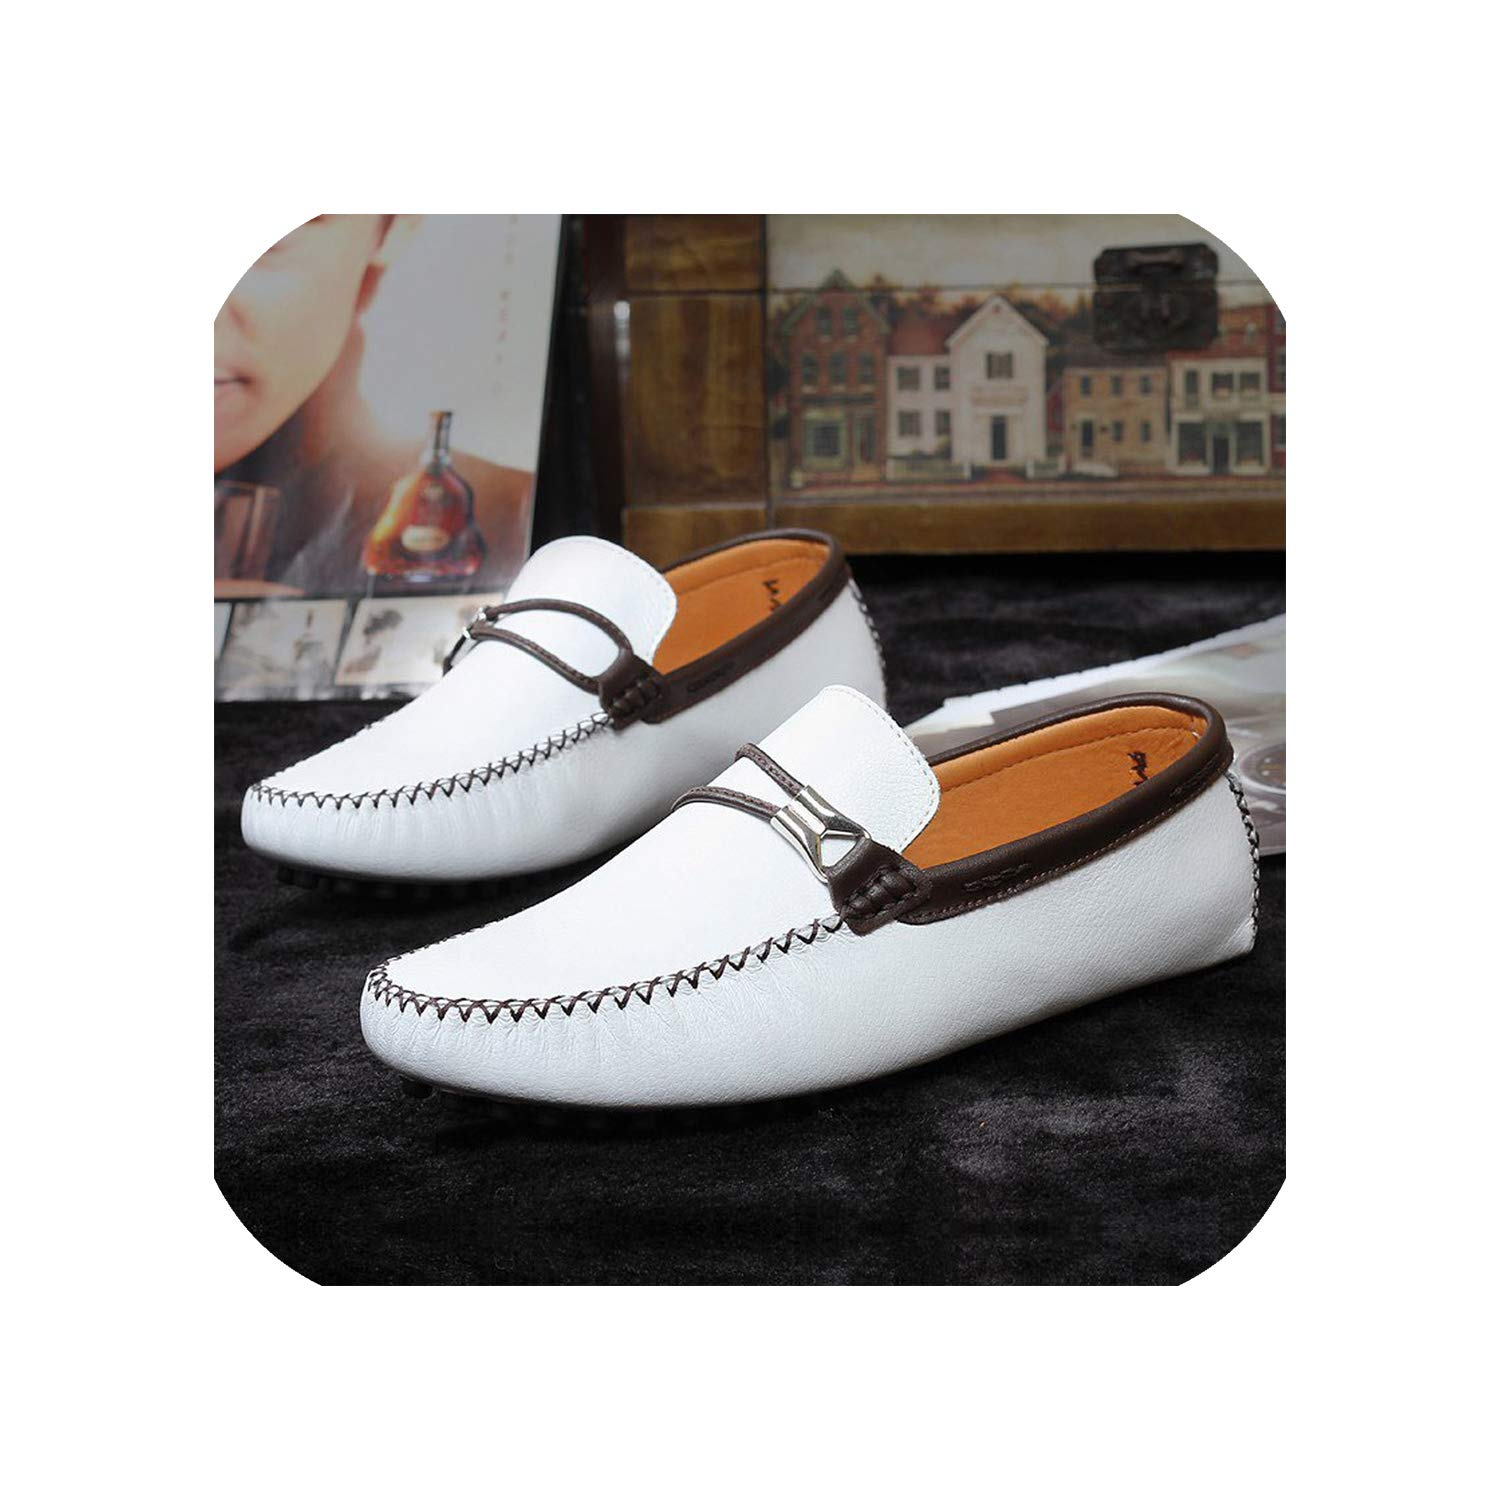 White Leather Peas shoes Simple Men's Casual shoes Trend Casual Driving Lazy shoes